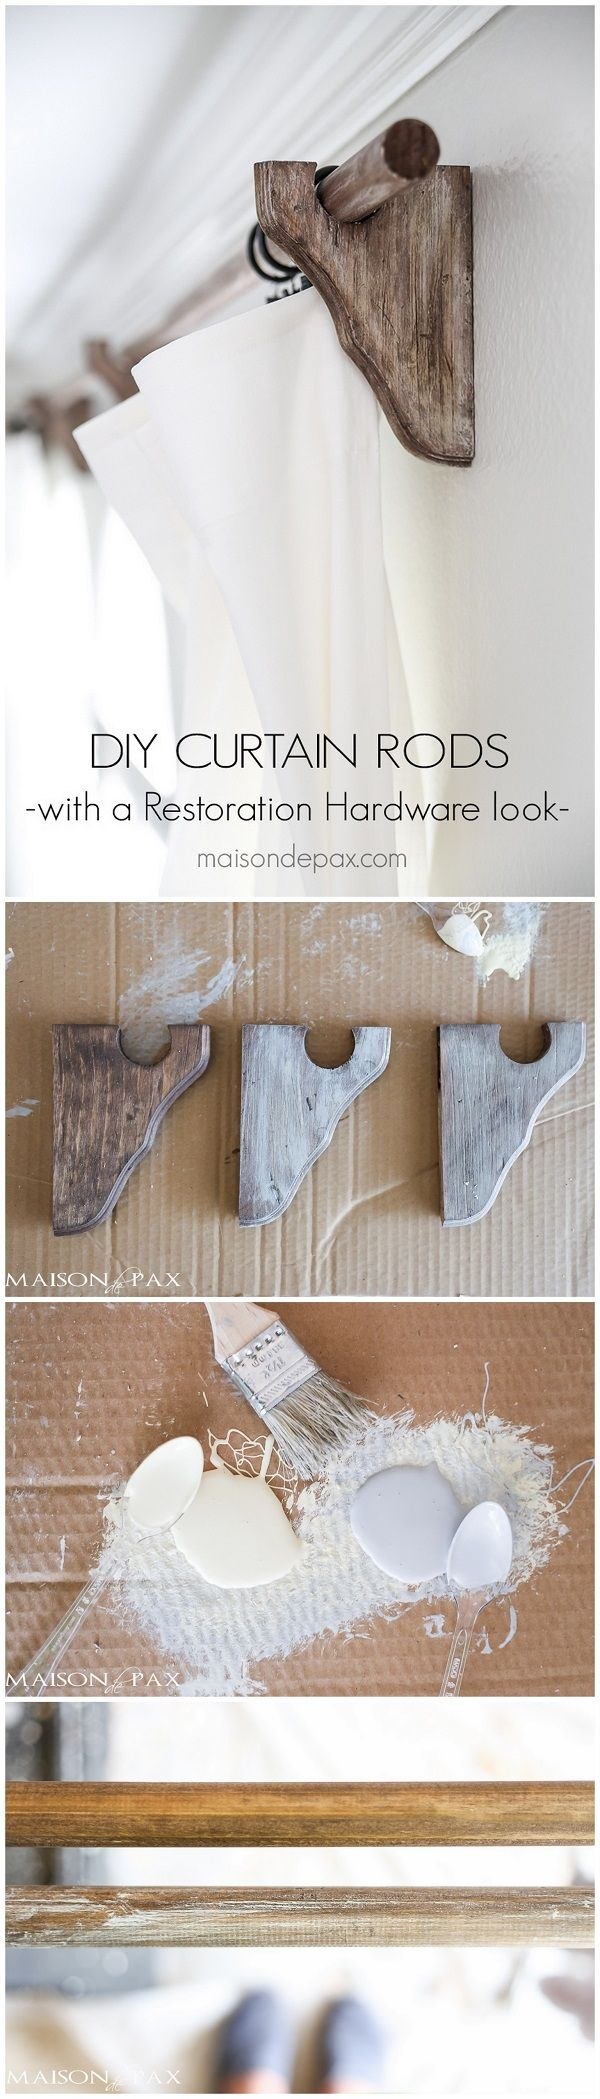 Check out how to make your own #DIY #farmhouse style curtain rods #woodworking #homedecor @istandarddesign